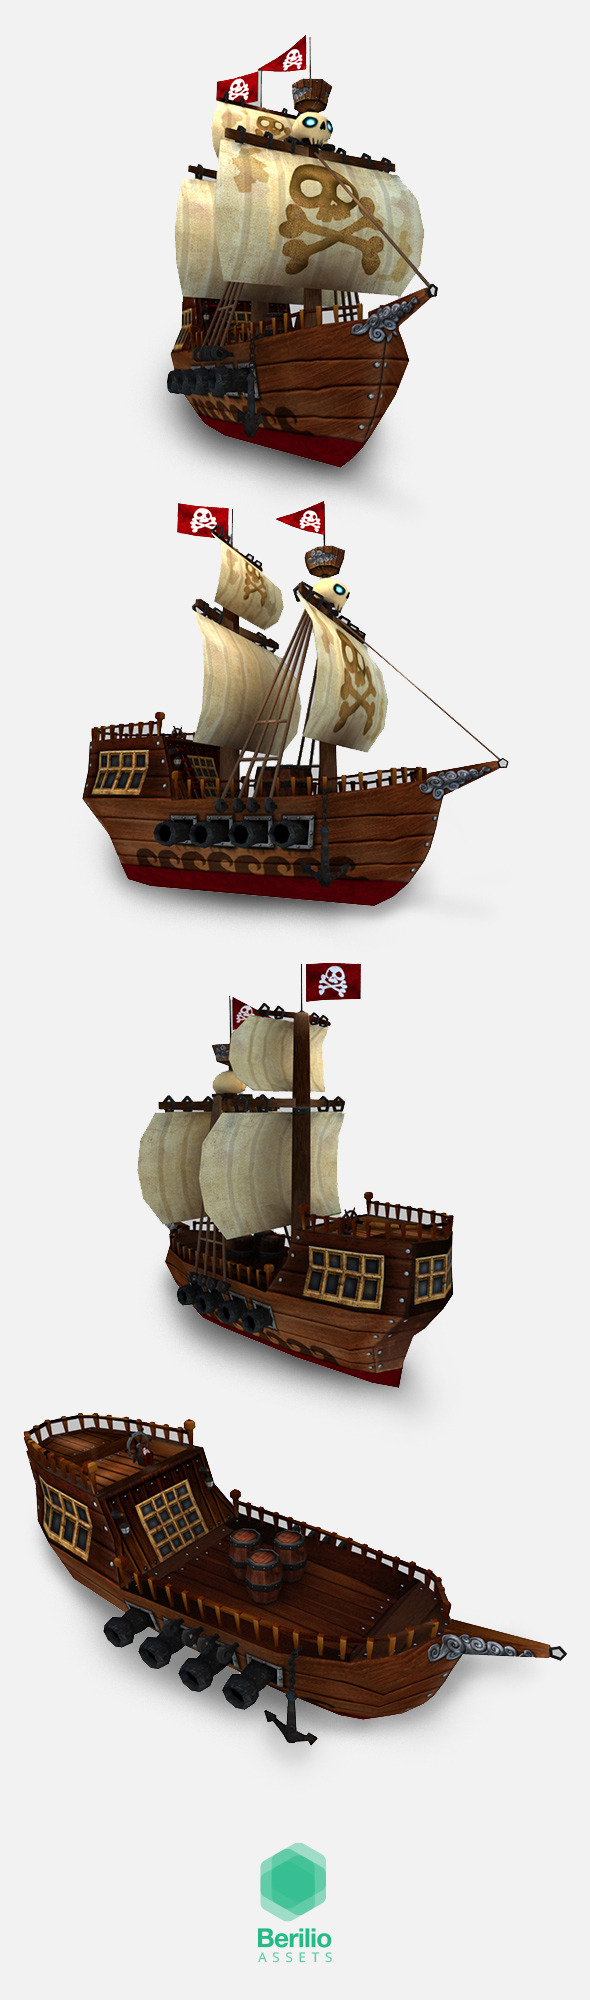 Low Poly Cartoonish Pirate Ship - 3DOcean Item for Sale